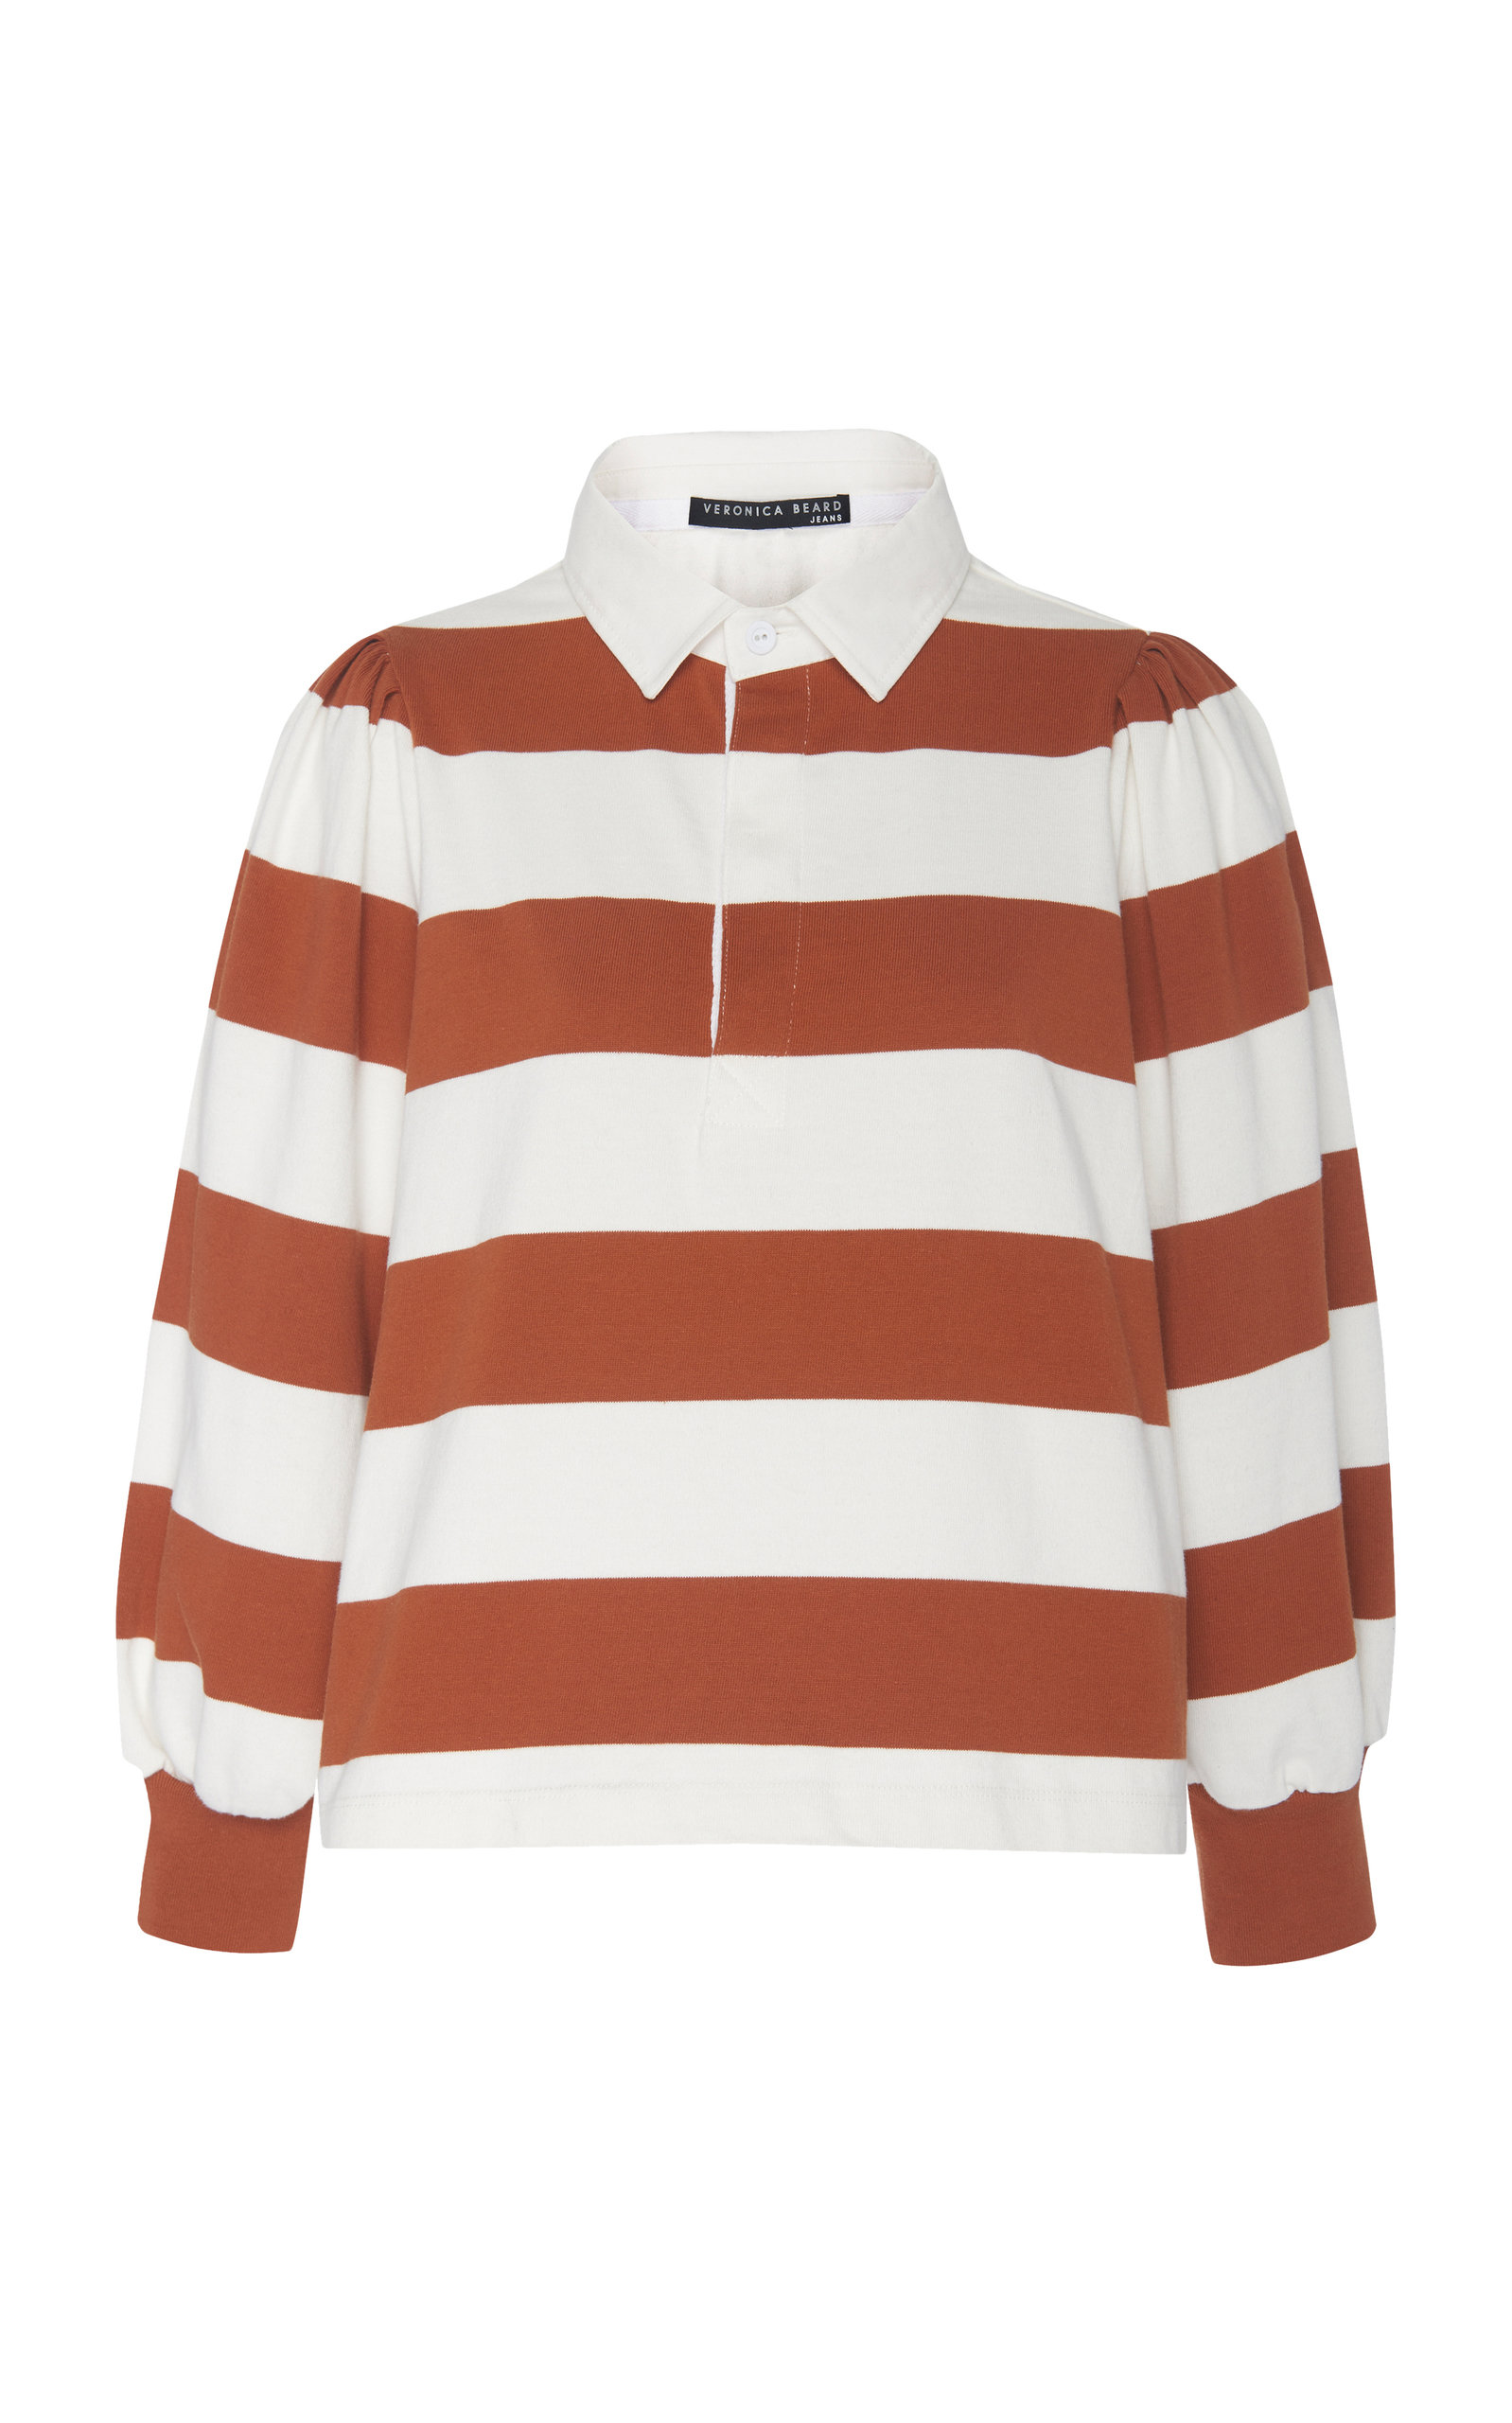 Presto Cotton Rugby Tee in Red